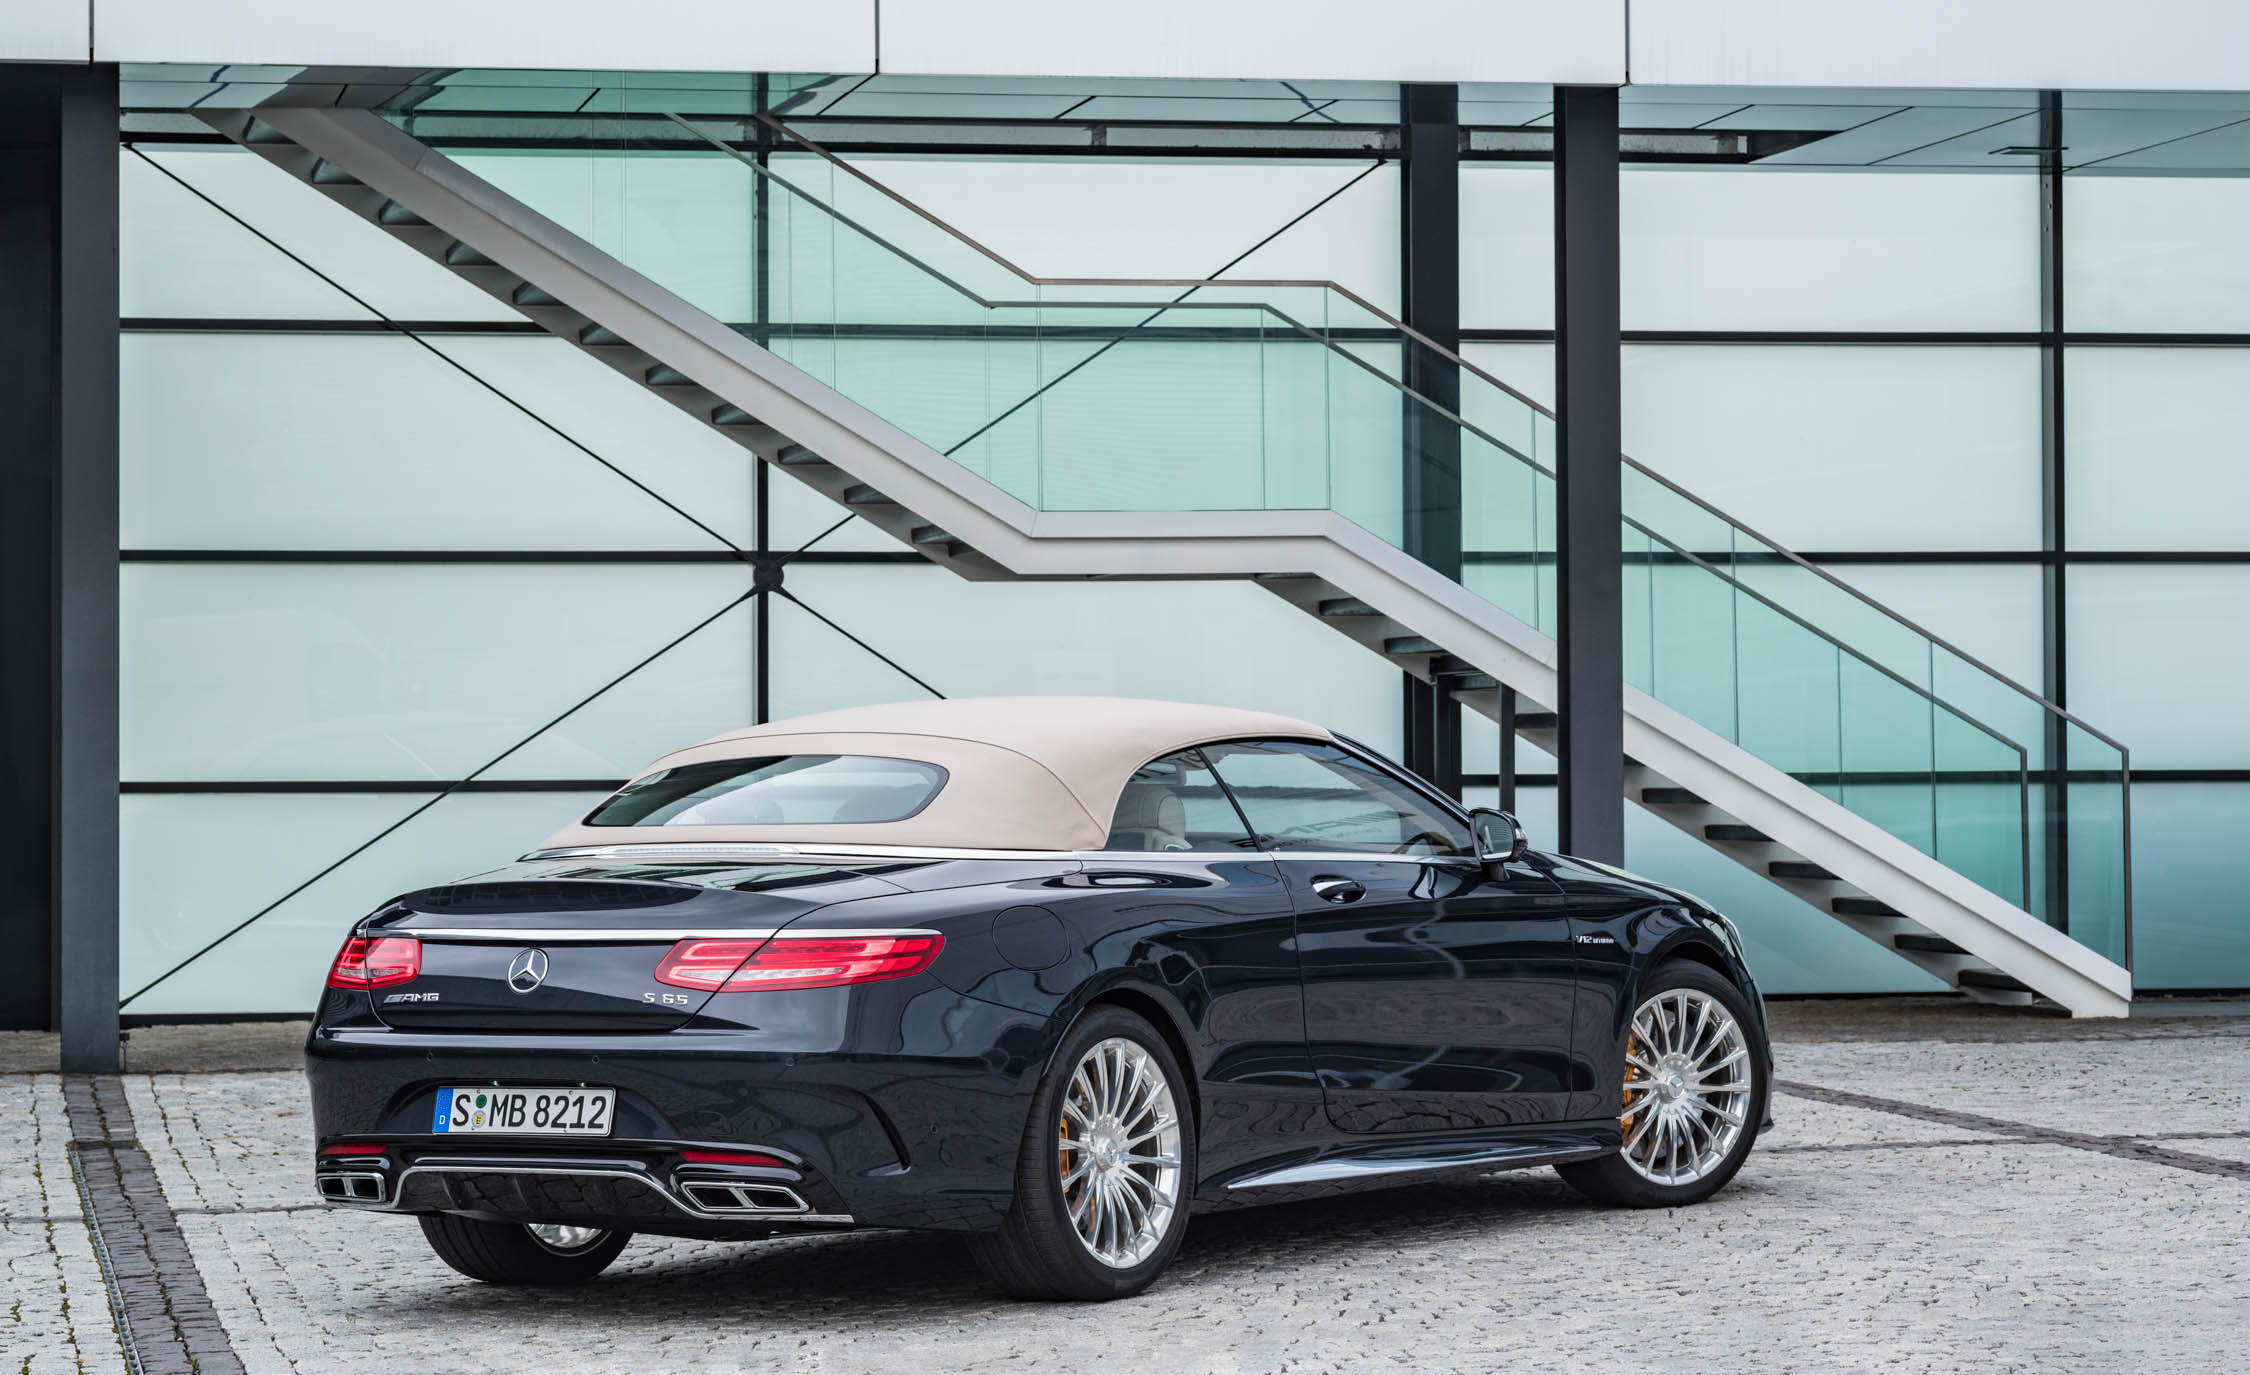 2017 Mercedes Amg S65 Cabriolet Exterior (Photo 2 of 15)